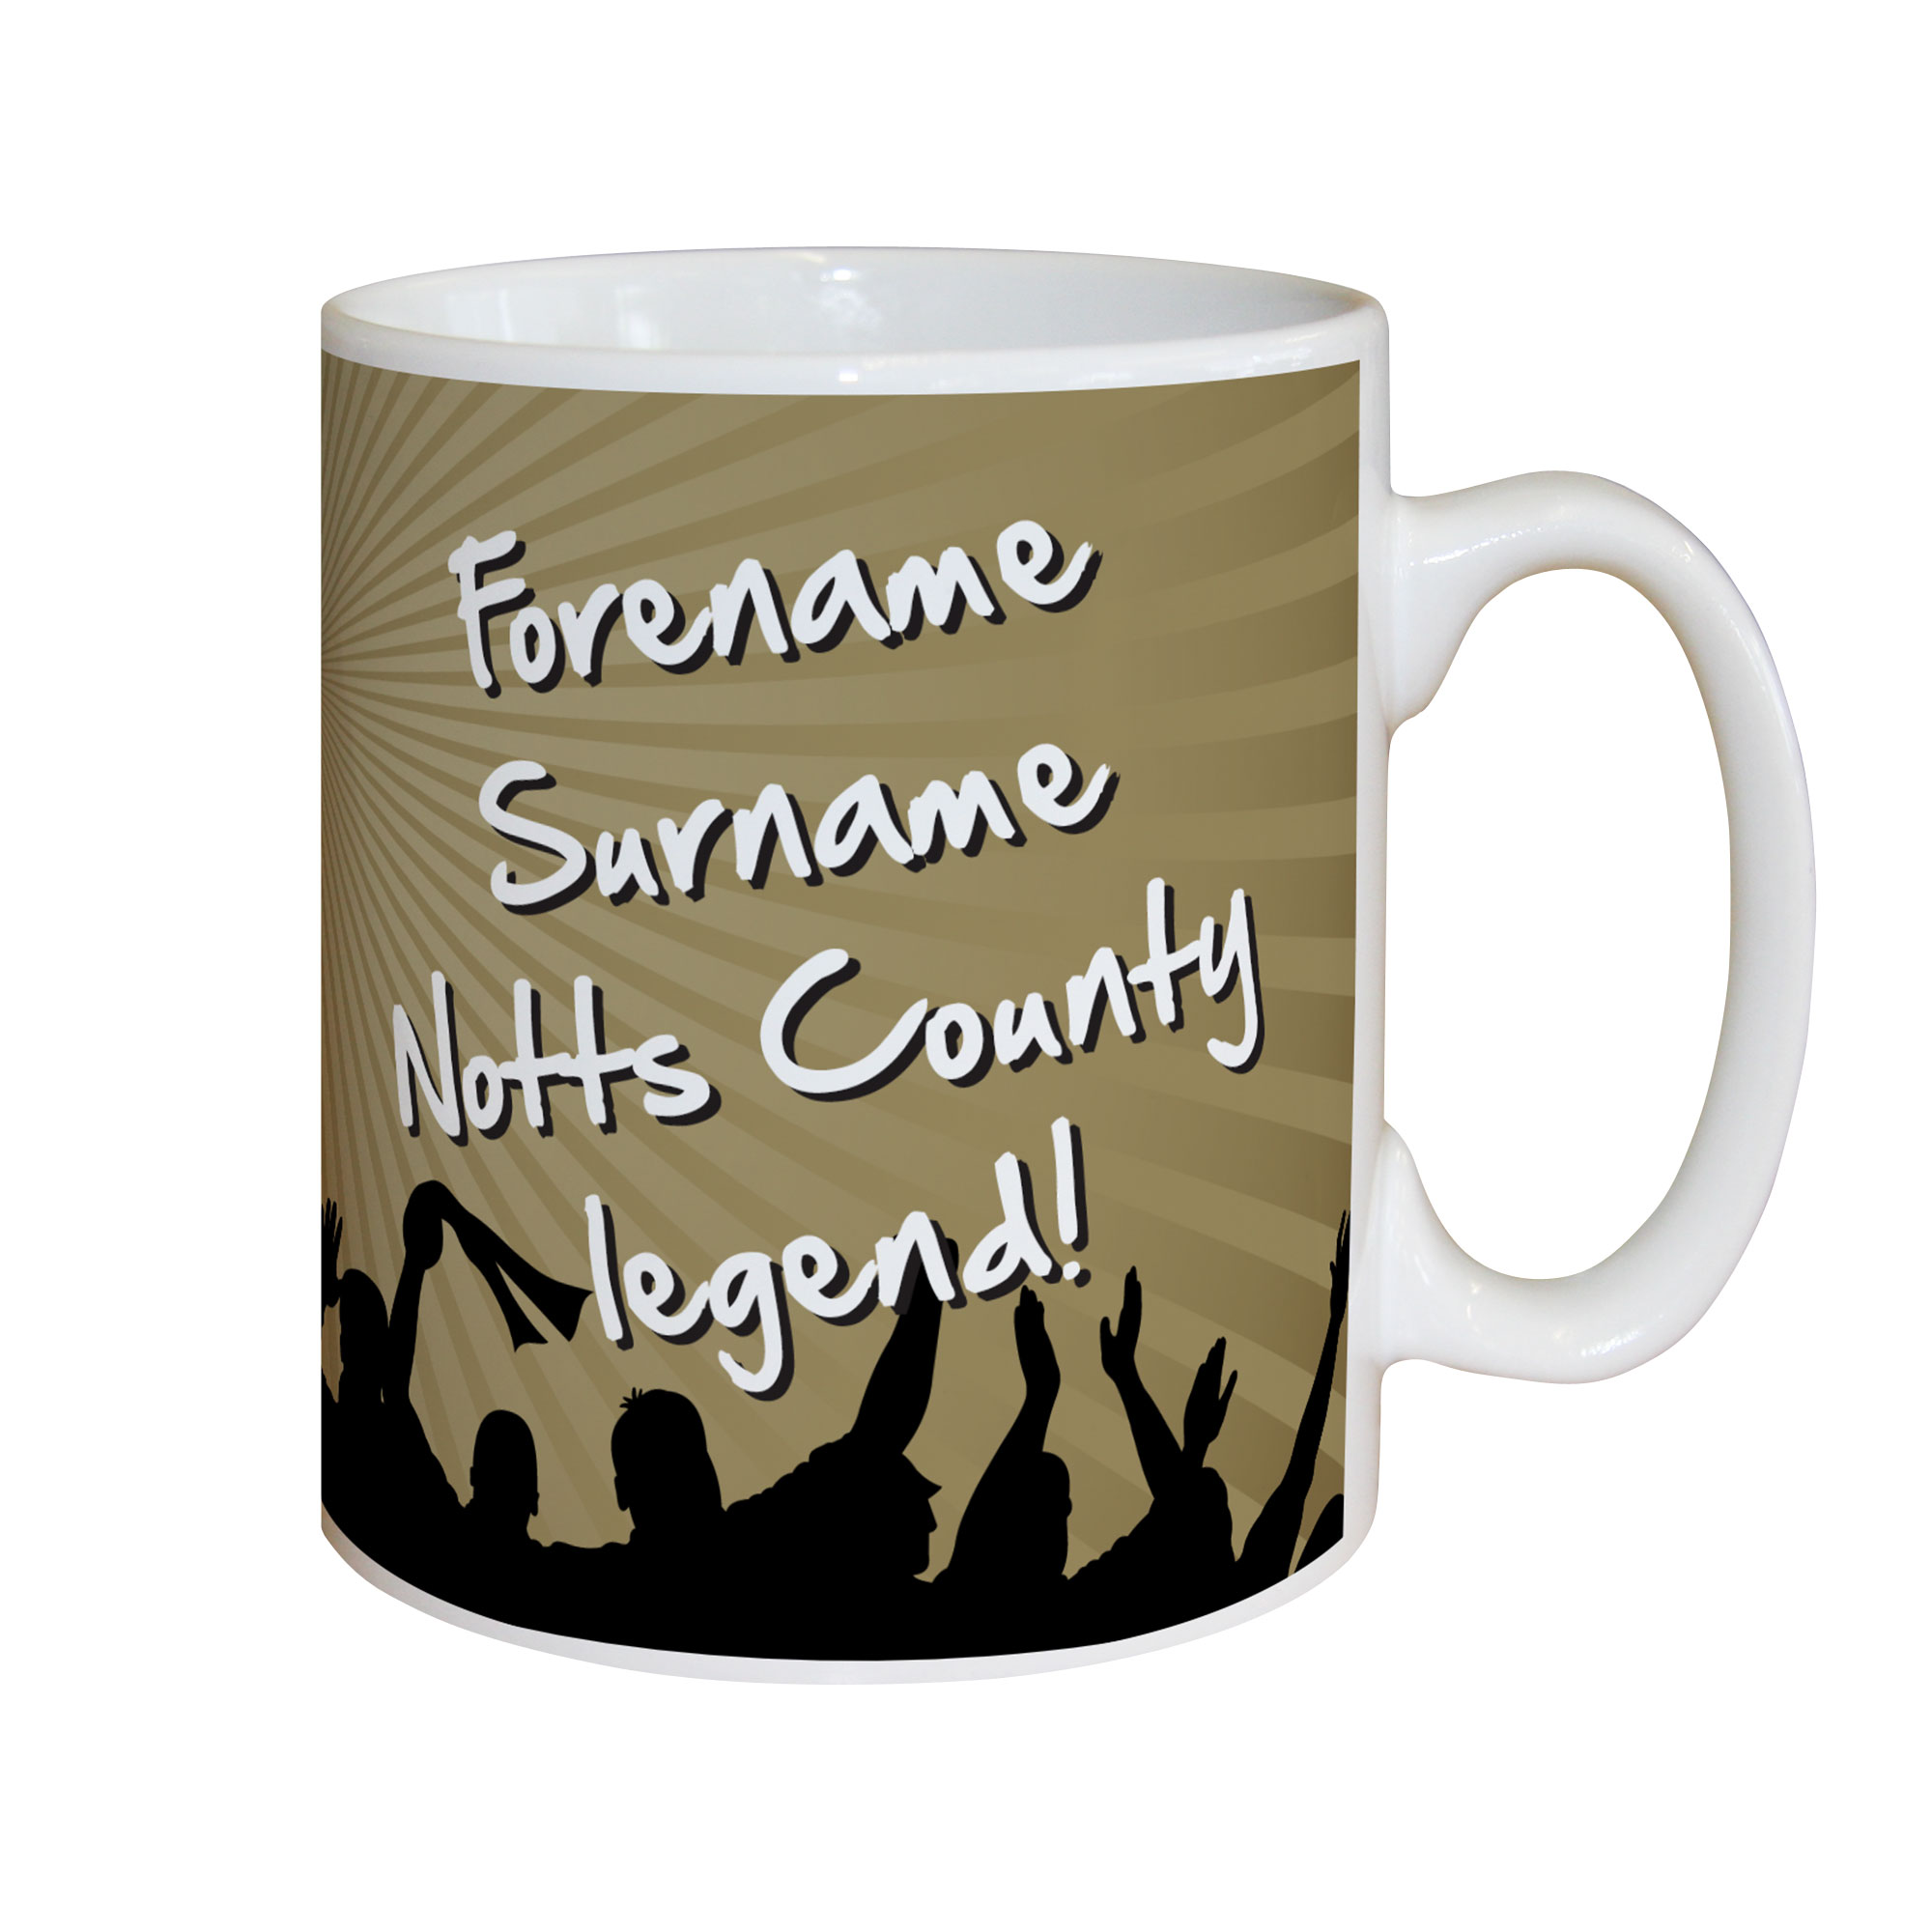 Notts County FC Legend Mug